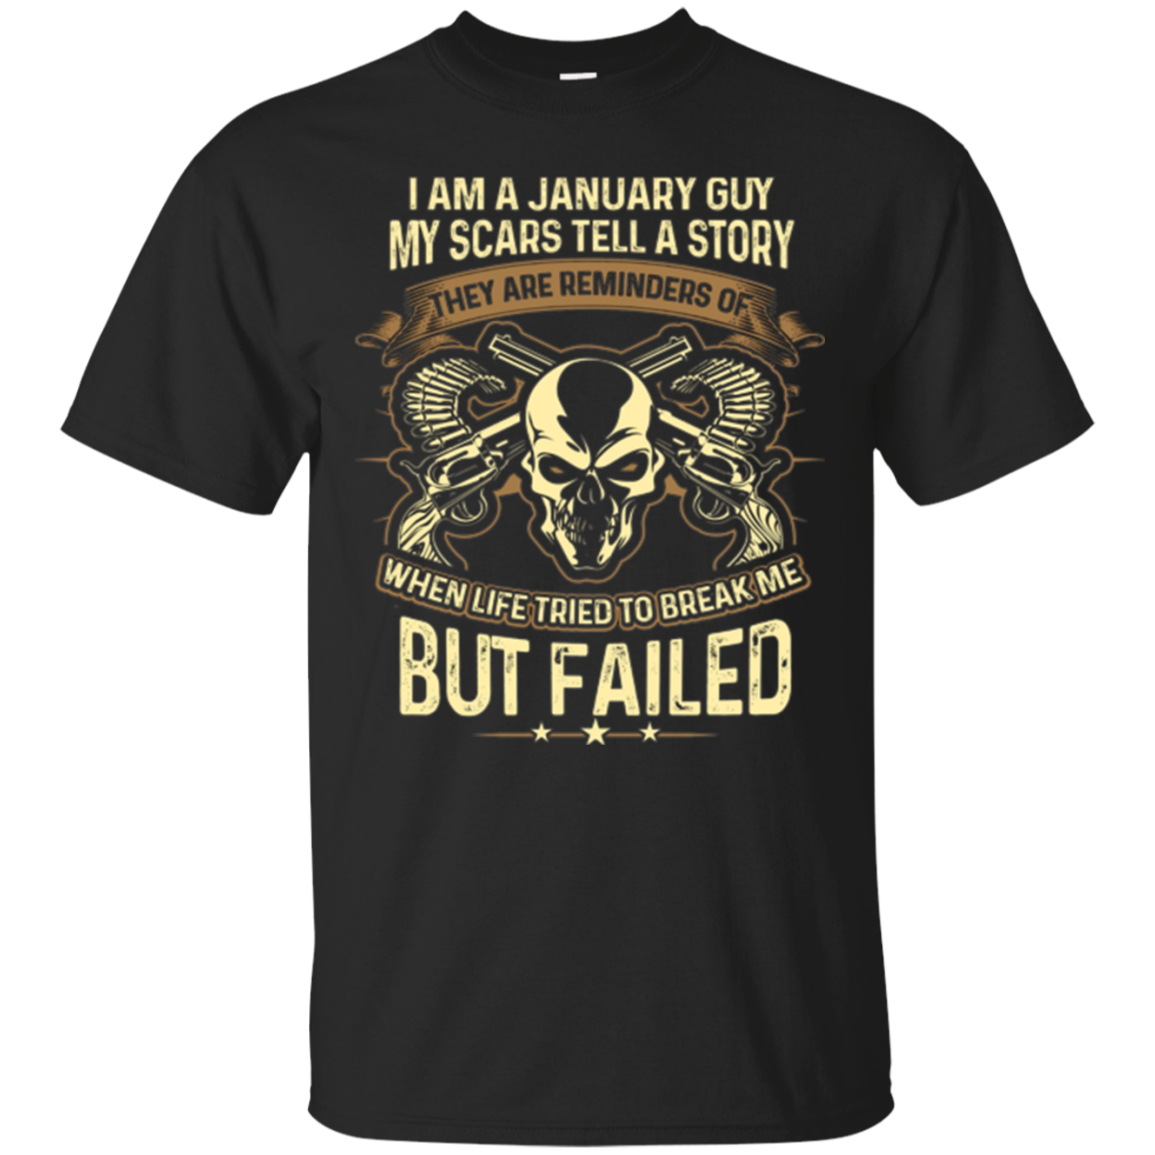 I Am A January Guy My Scars Tell A Story T-shirt